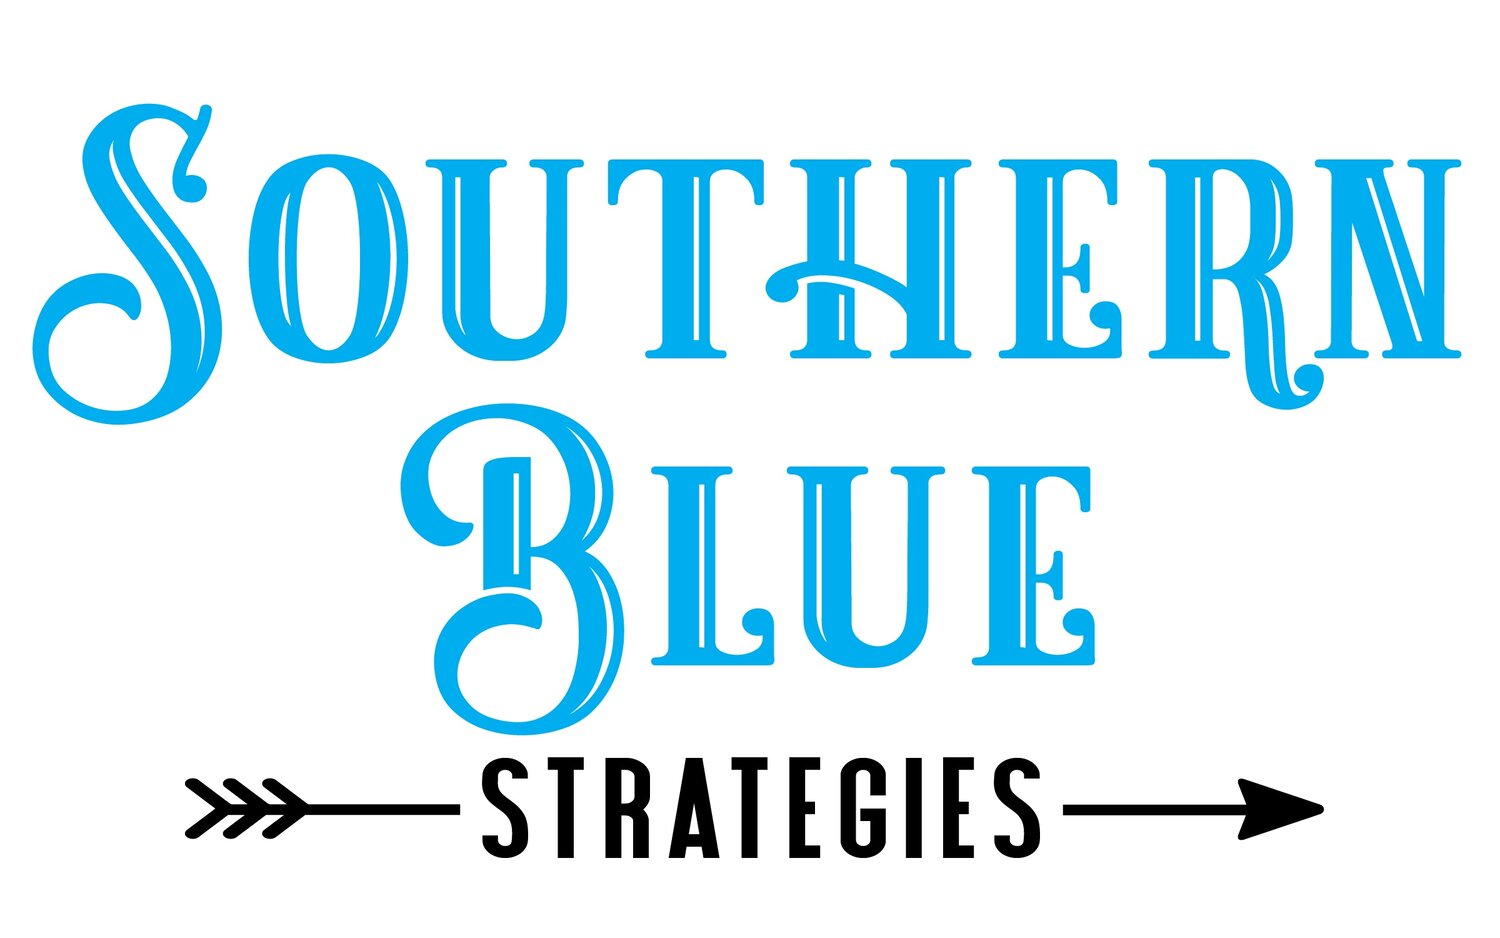 Southern Blue Strategies